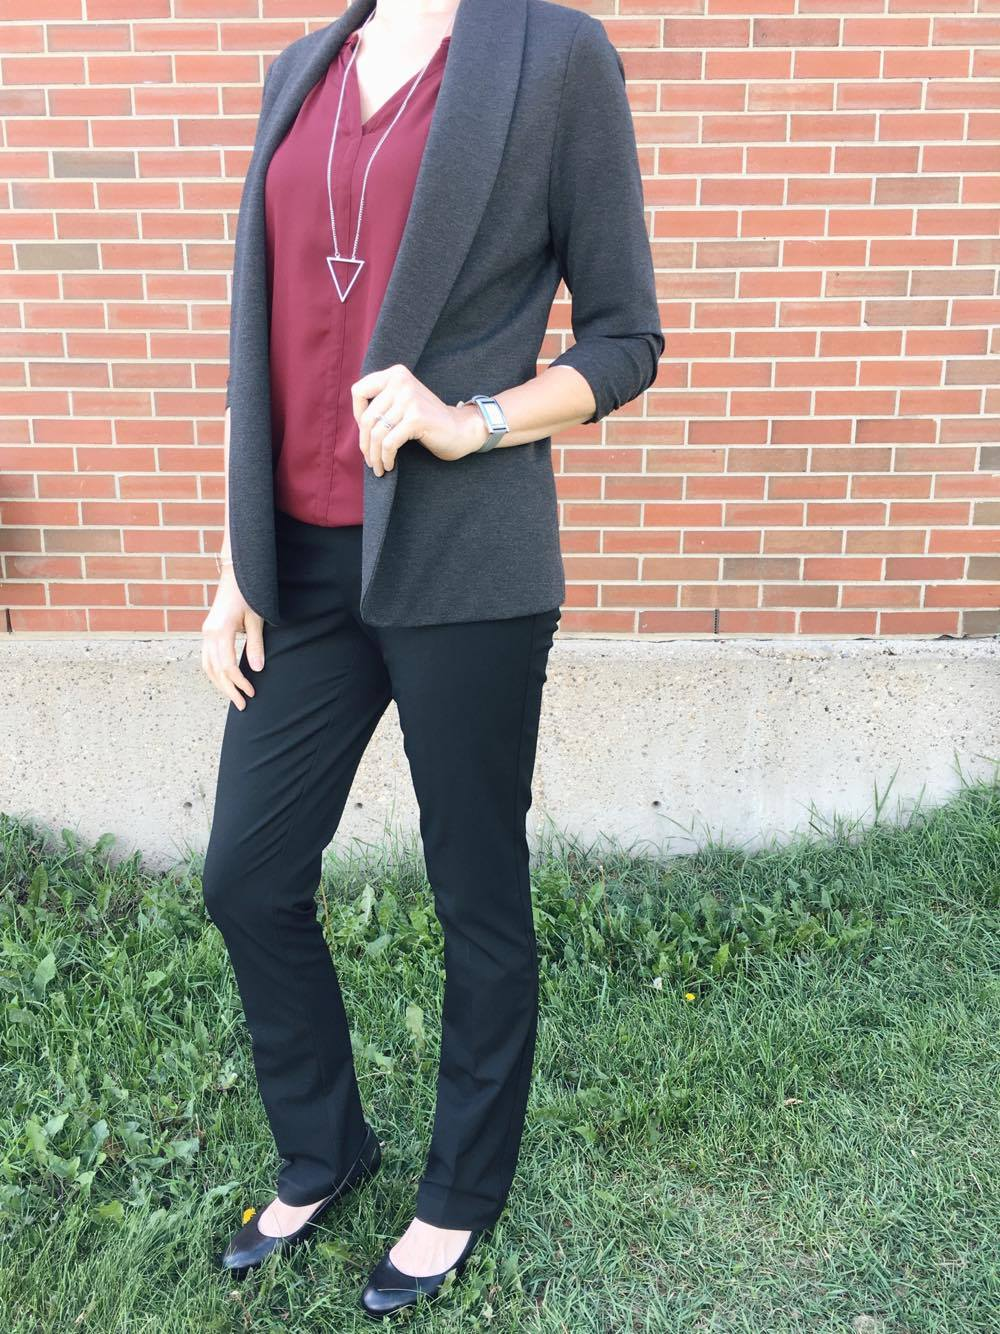 Add our Lisette blazer to a sleeveless blouse to transition your outfit from summer to fall!